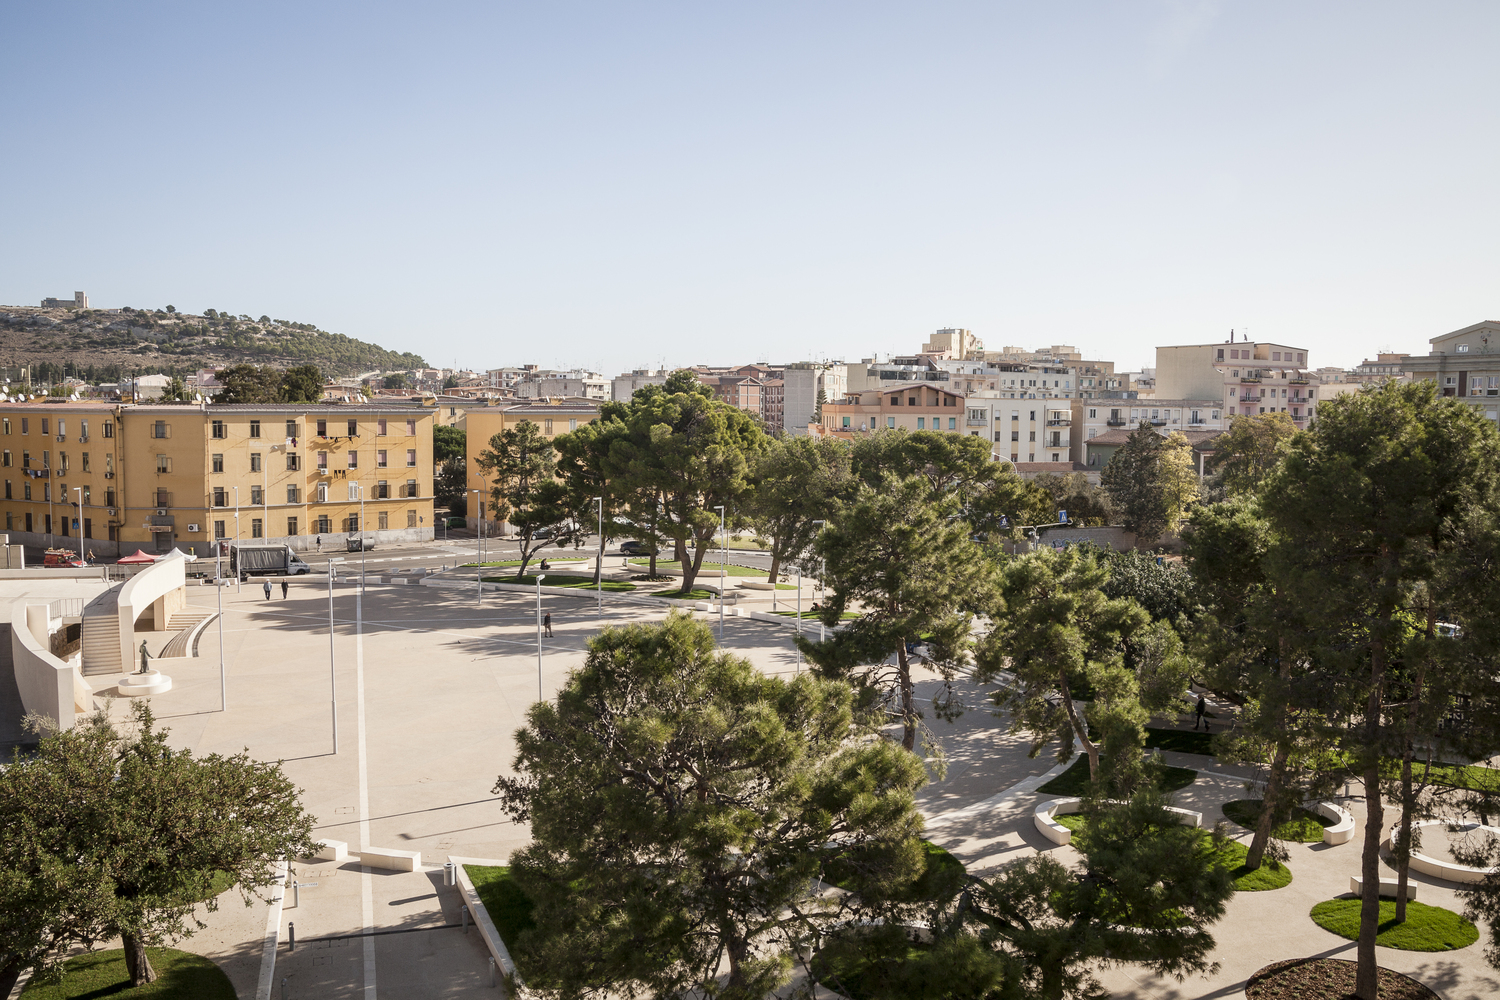 Gallery of Renovation of Piazza San Michele / VPS Architetti - 6